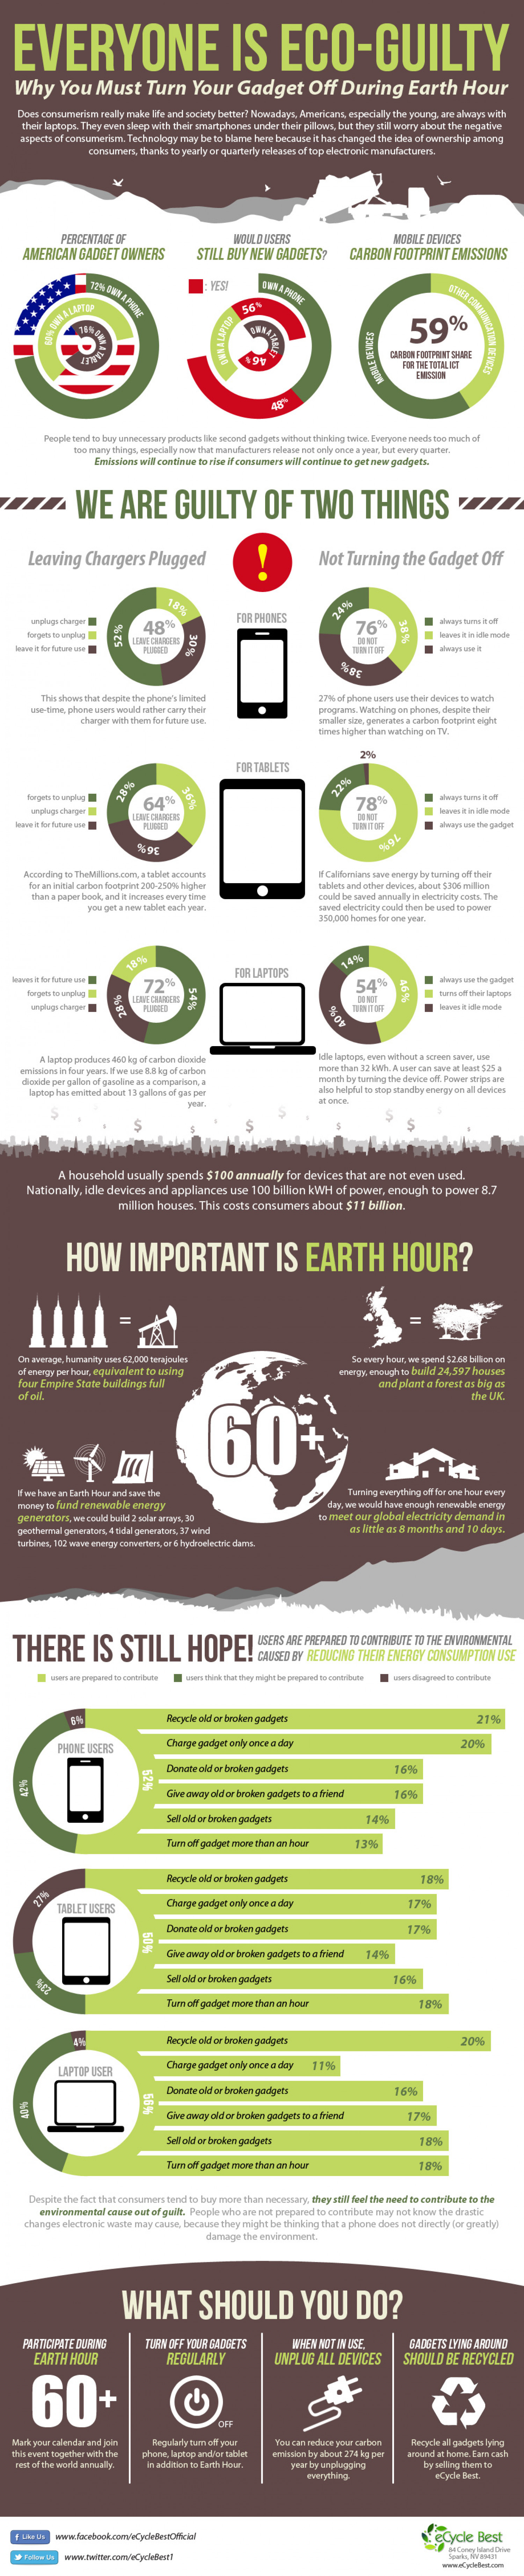 Everyone is Eco-Guilty Infographic